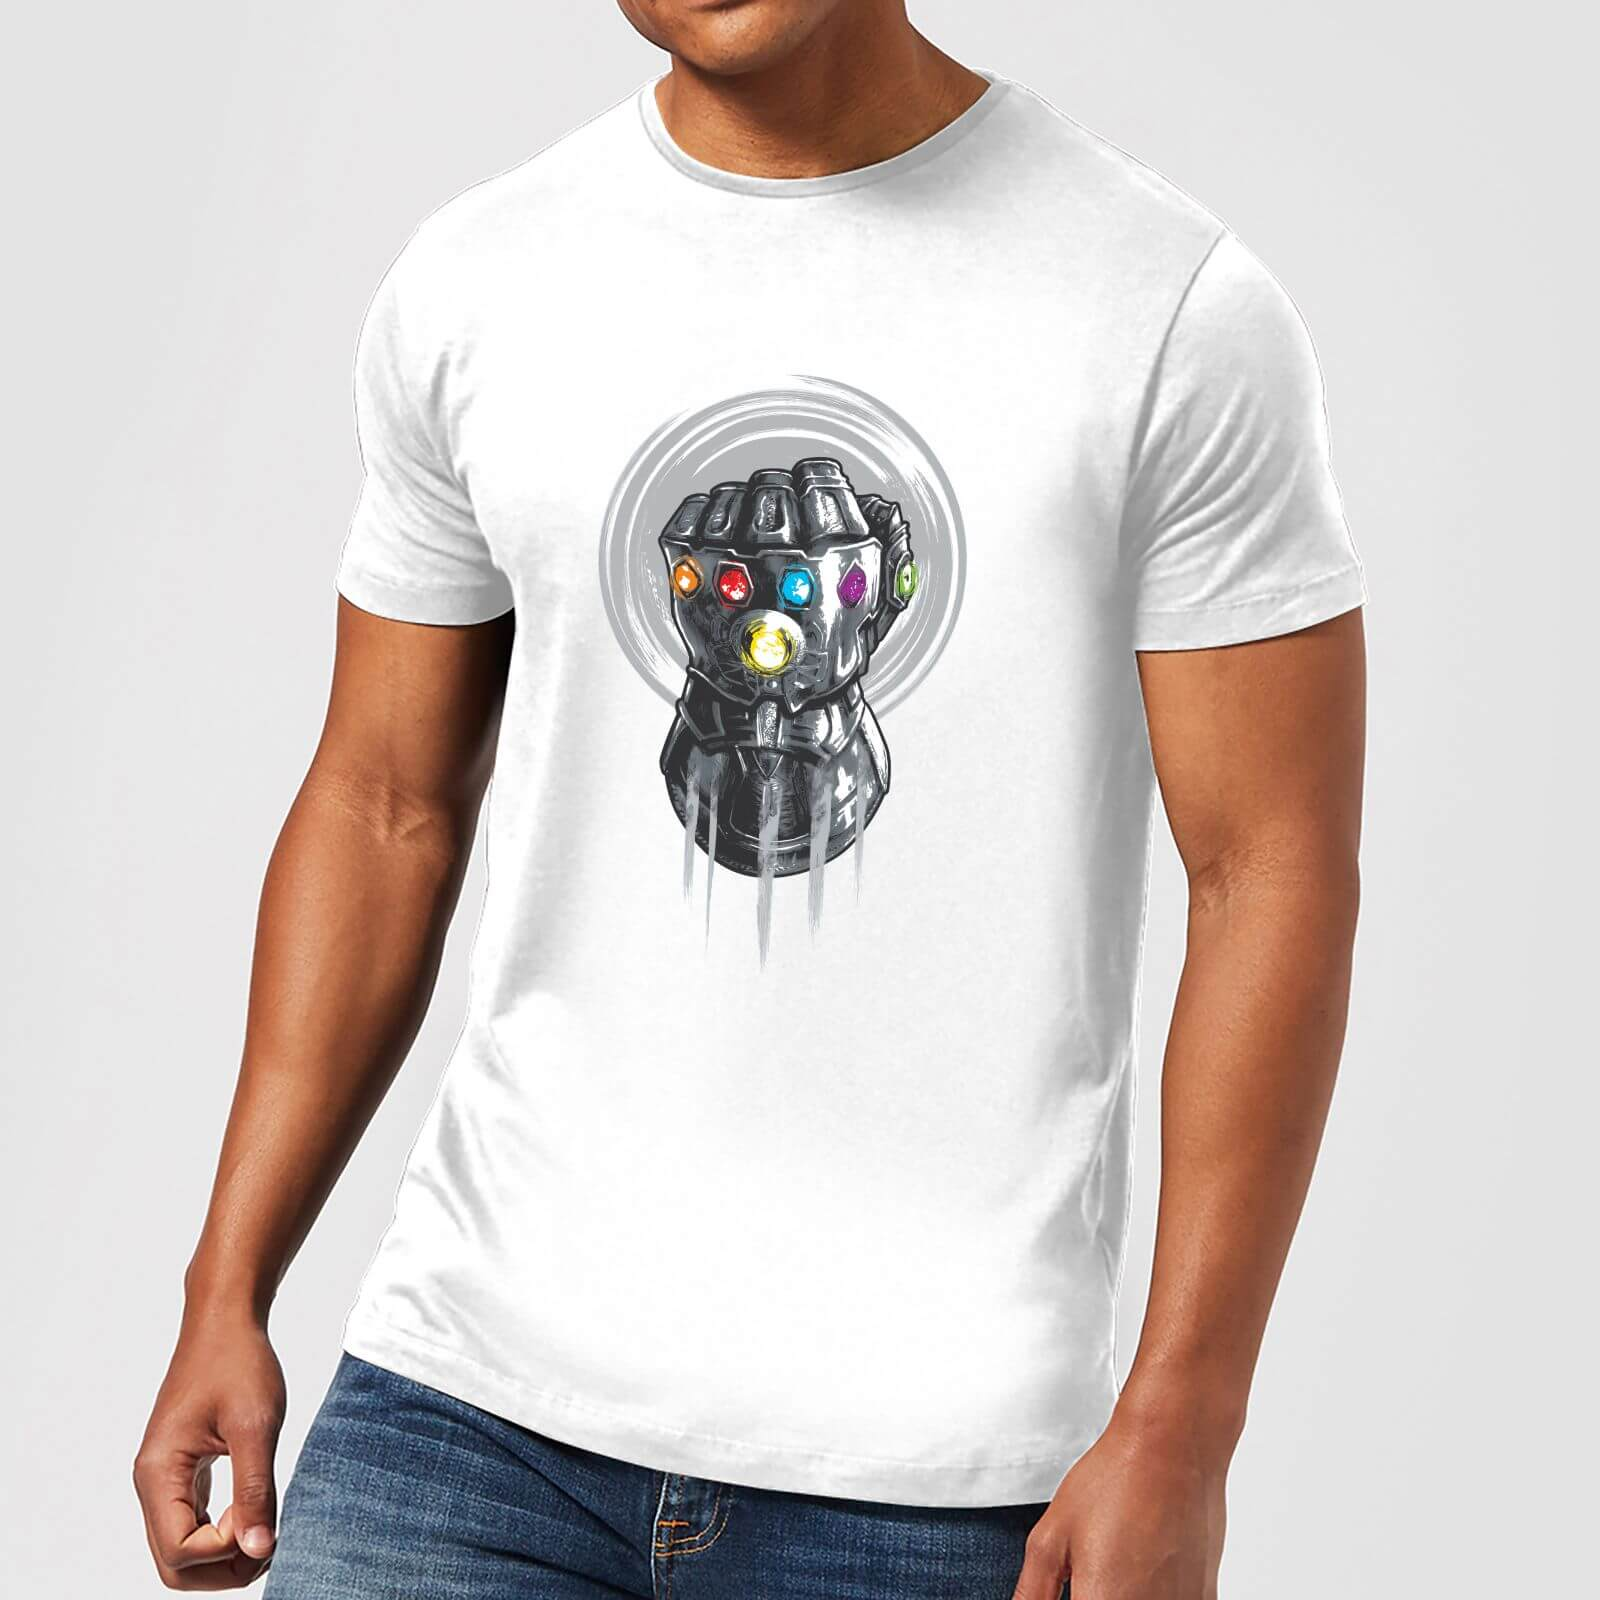 popular design purchase original official shop Marvel Avengers Infinity War Thanos Infinite Power Fist T-Shirt - White